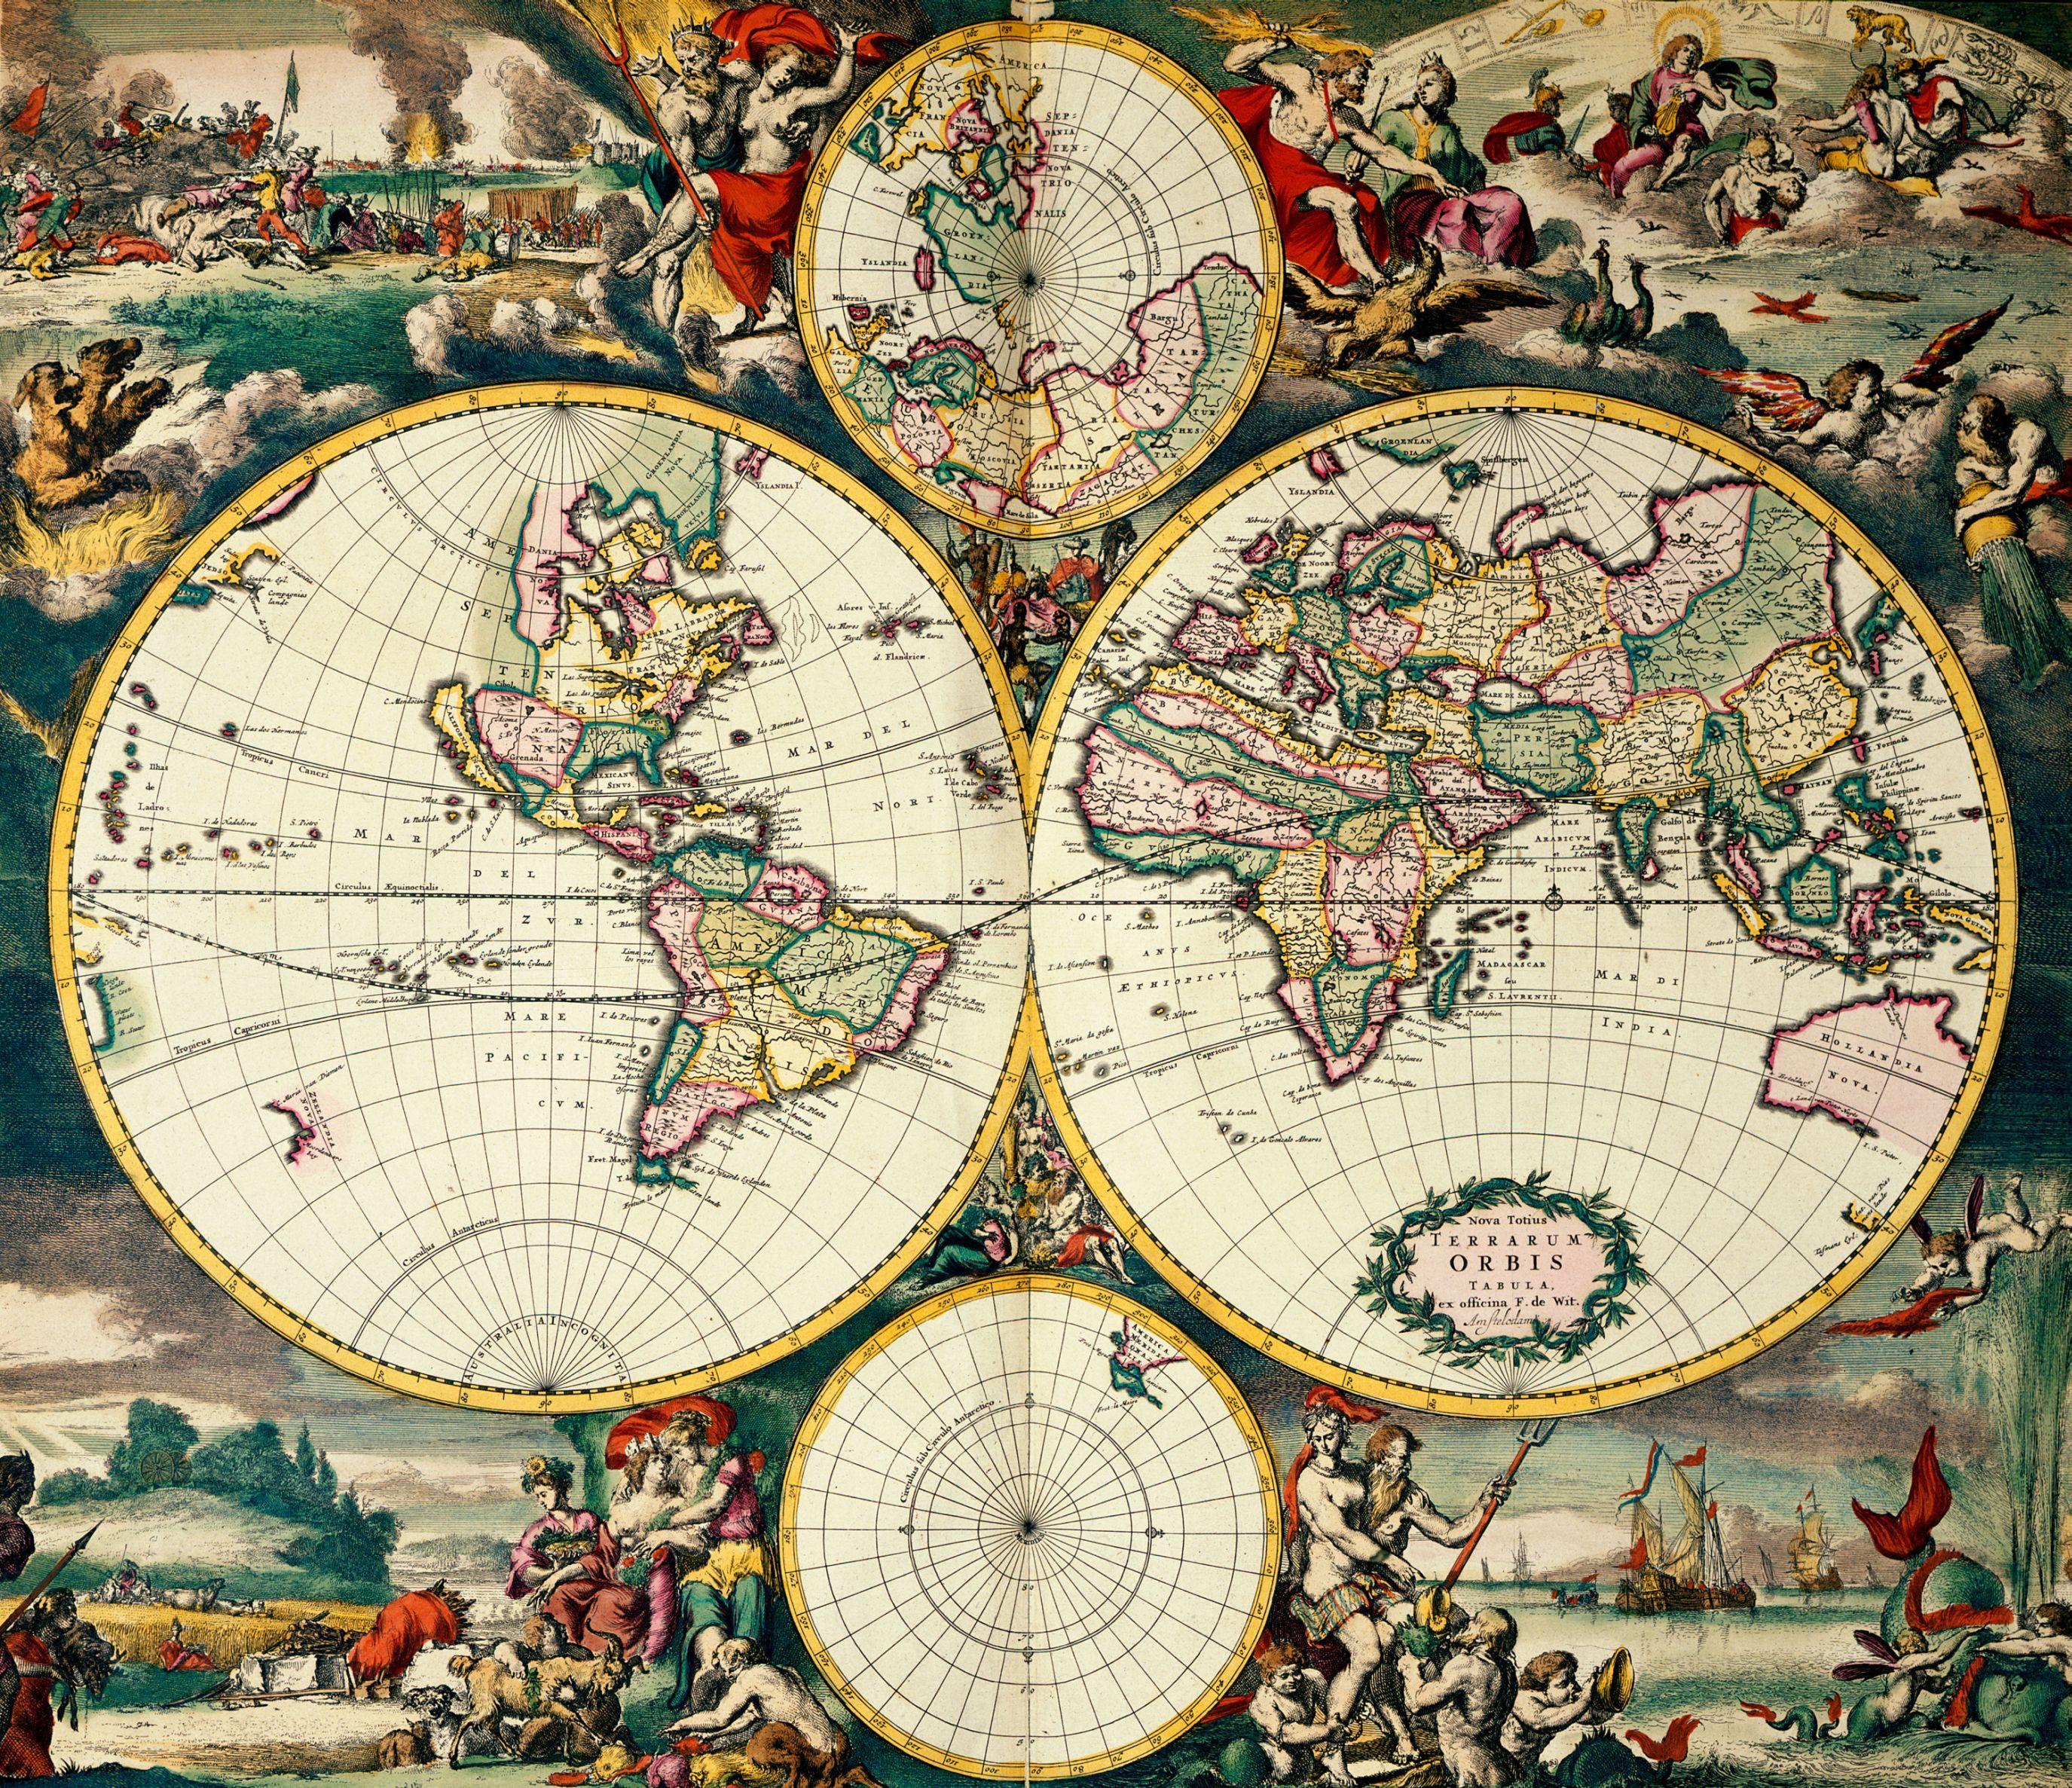 Four hemisphere world map image taken from nova totius terrarum four hemisphere world map image taken from nova totius terrarum orbis originally publishedproduced in amsterdam gumiabroncs Choice Image